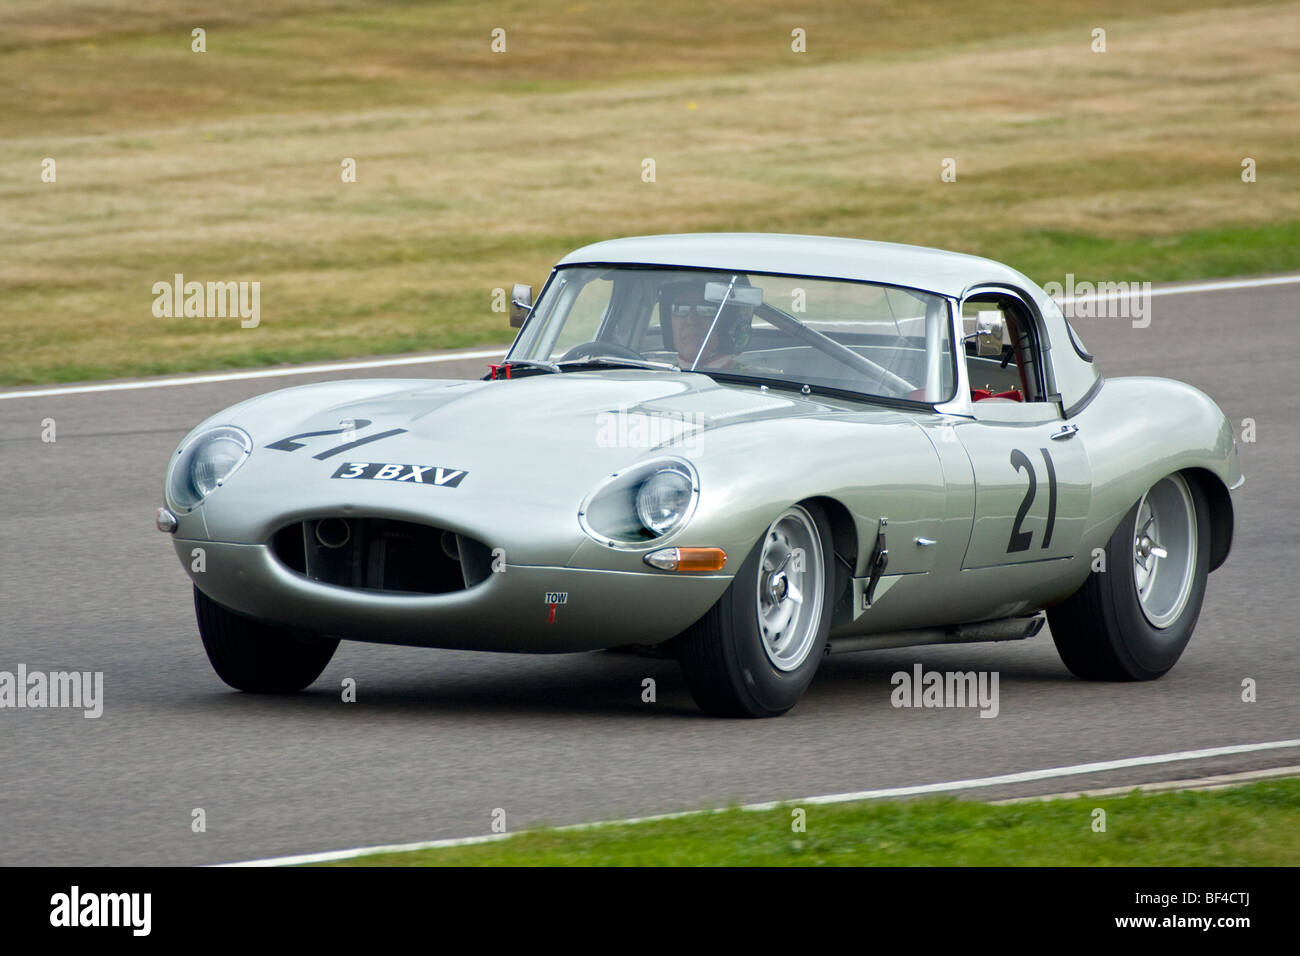 1963 Jaguar E-type with driver Carlos Monteverde during the RAC TT race at the 2009 Goodwood Revival, Sussex, UK. - Stock Image